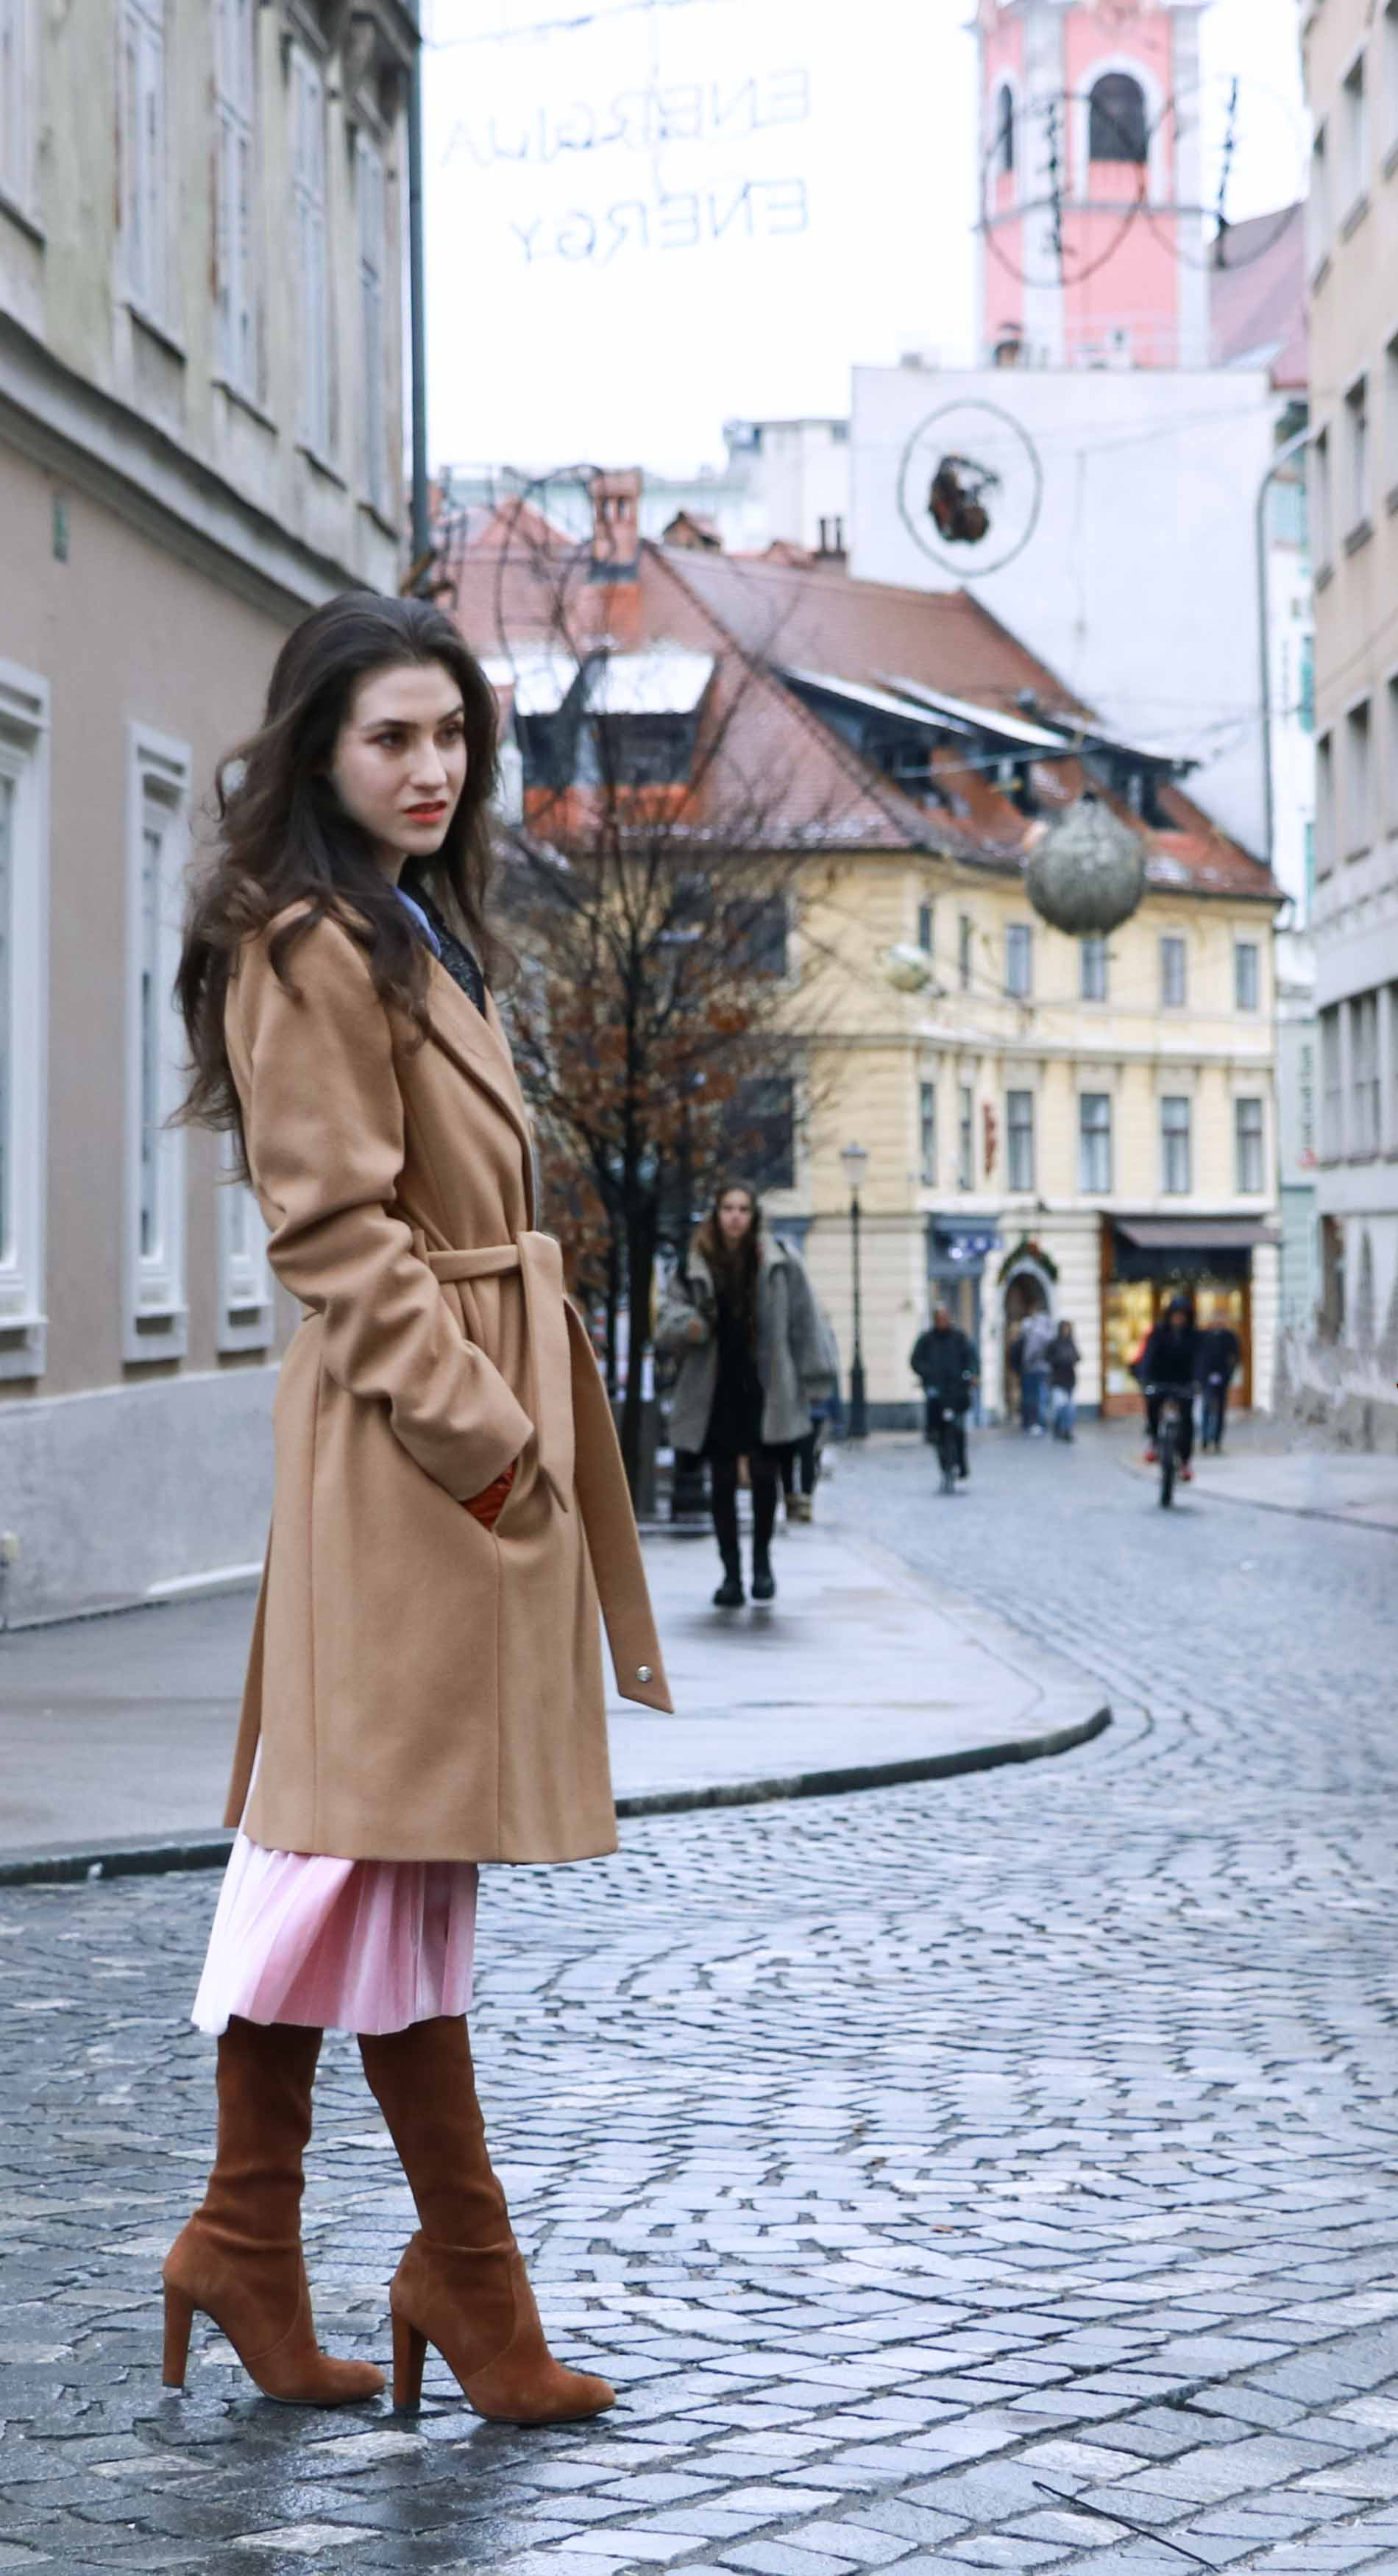 Fashion Blogger Veronika Lipar of Brunette from Wall Street wearing ESCADA wrap camel coat, pink velvet midi pleated skirt, brown Stuart Weitzman Highland OTK boots, black top handle bag, leather gloves